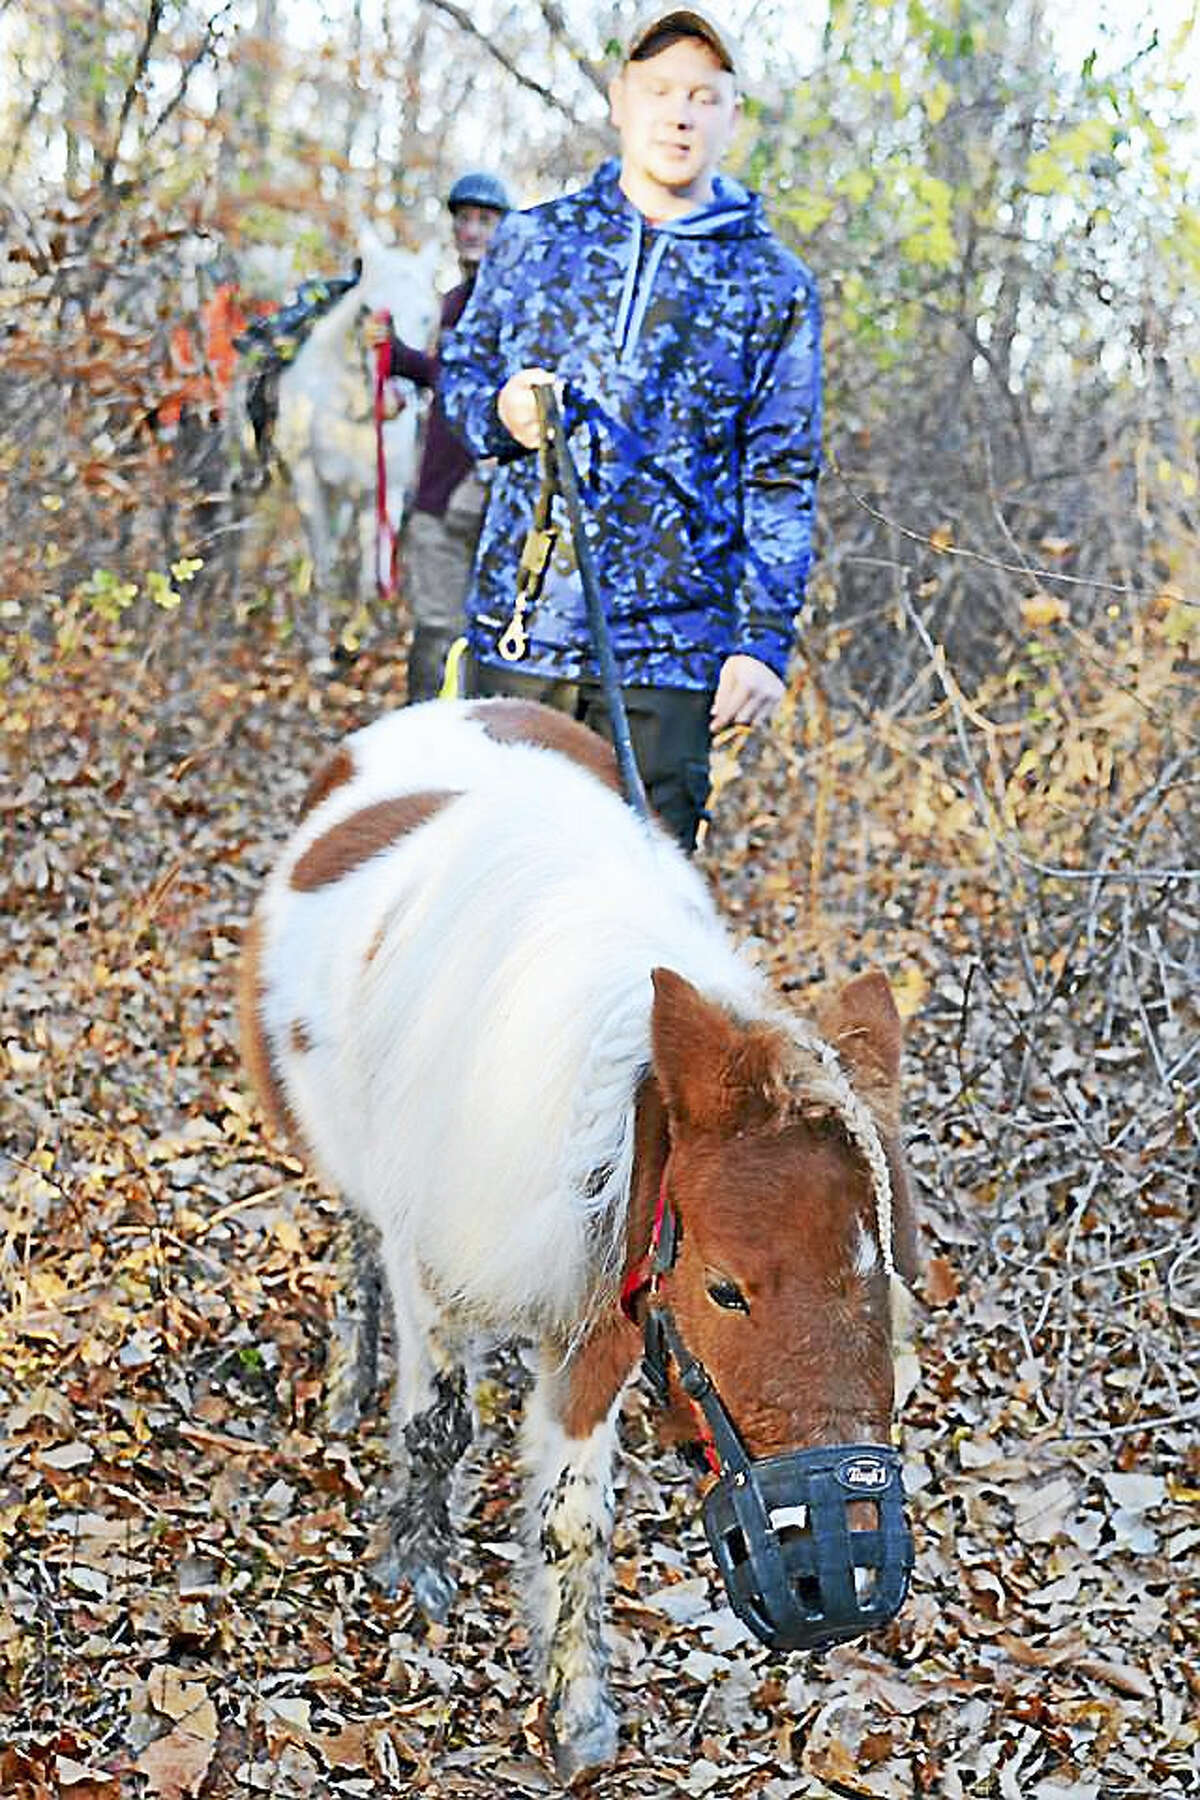 Two horseback riders called for help in getting their horse out of the mud on a trail near the Turkey Hill Reservoir.